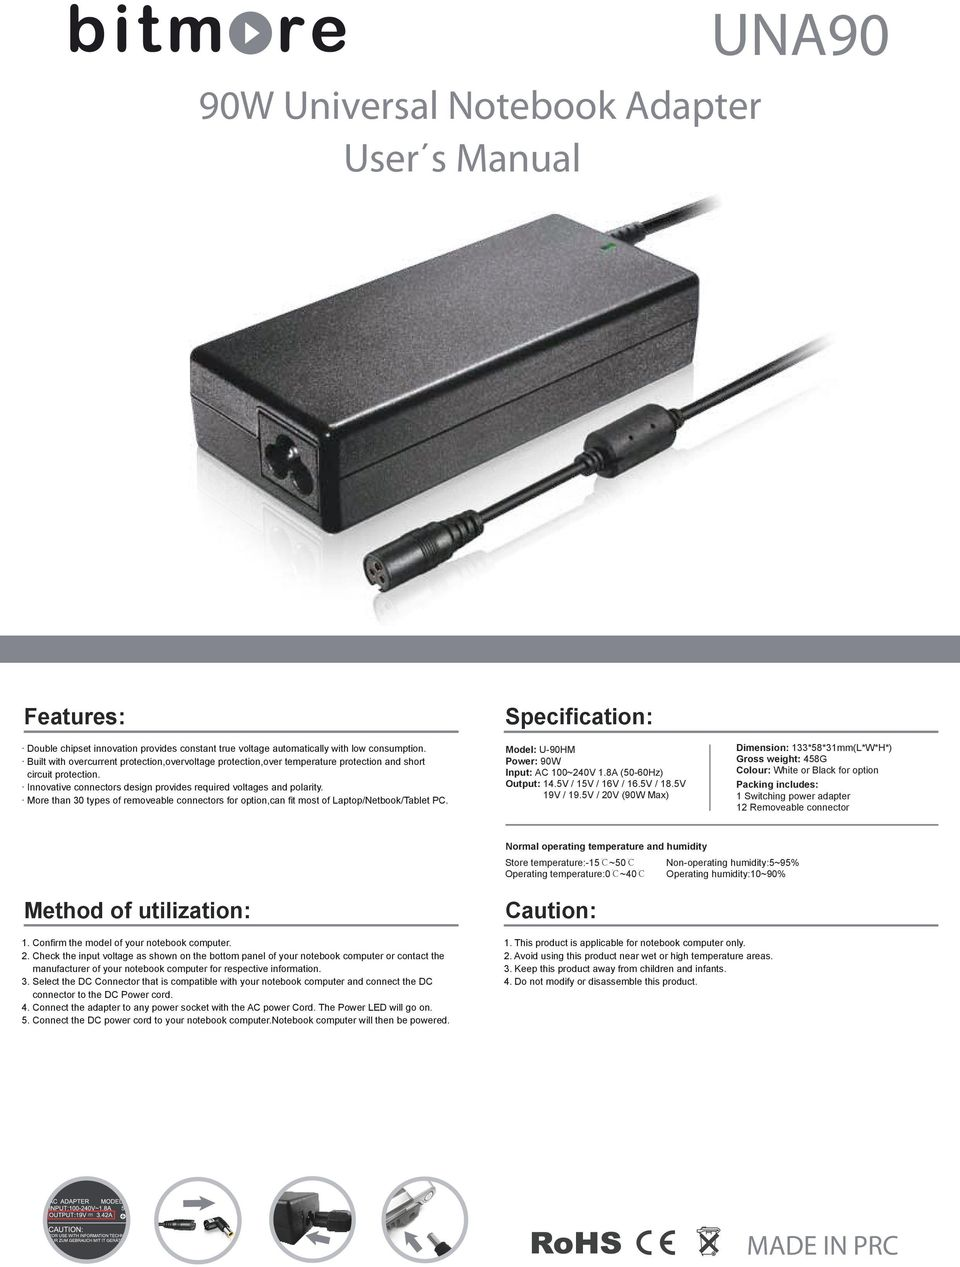 More than 30 types of removeable connectors for option,can fit most of Laptop/Netbook/Tablet PC. Model: U-90HM Power: 90W Input: AC 100~240V 1.8A (50-60Hz) Output: 14.5V / 15V / 16V / 16.5V / 18.